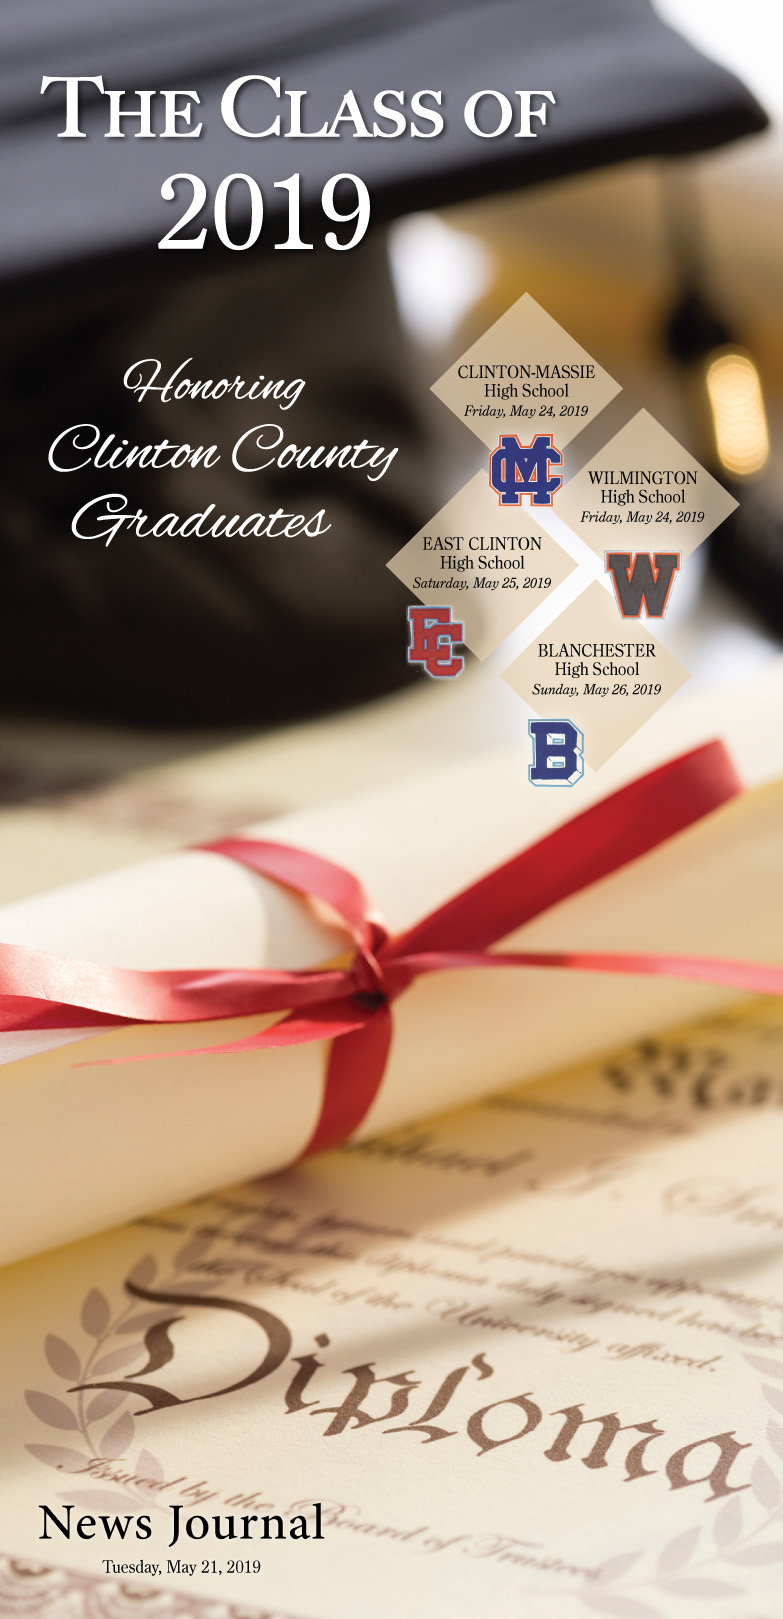 Clinton County Graduation 2019